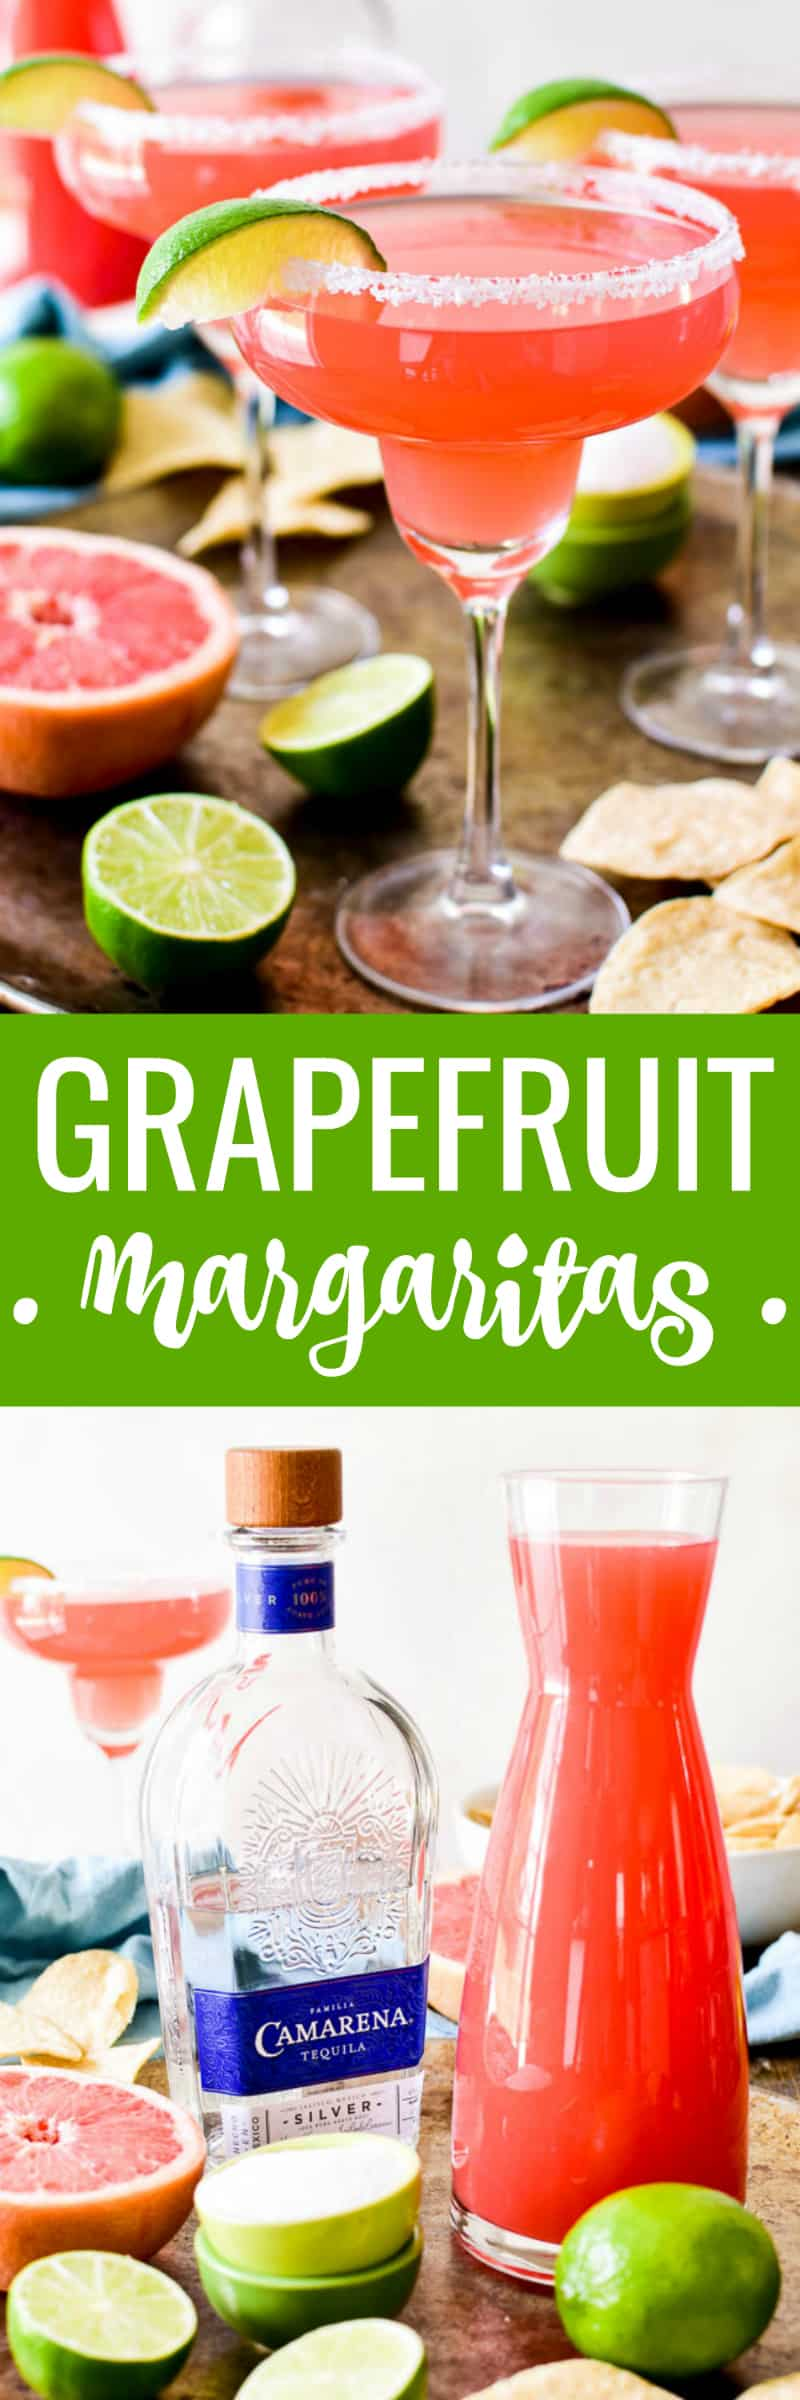 Grapefruit Margaritas are sure to become a new summer favorite!  This easy margarita recipe is made with just 4 ingredients and comes together in no time. Perfect for summer parties, cookouts, or lazy days by the pool.  If you love margaritas, you'll love this refreshing, delicious twist!